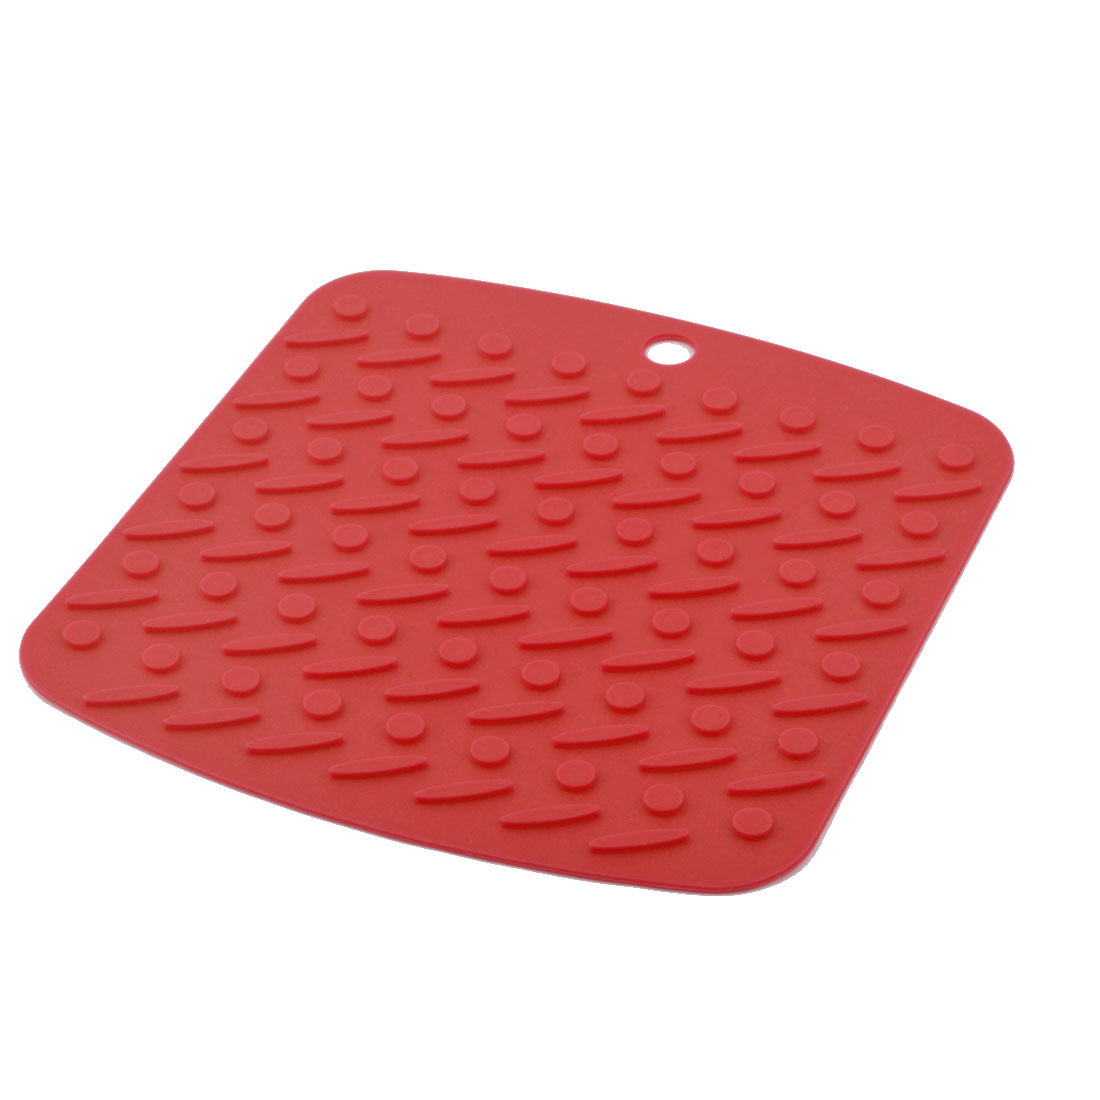 Silicone Nonslip Table Heat Resistant Mat Bowl Cup Cushion Placemat Pad Red